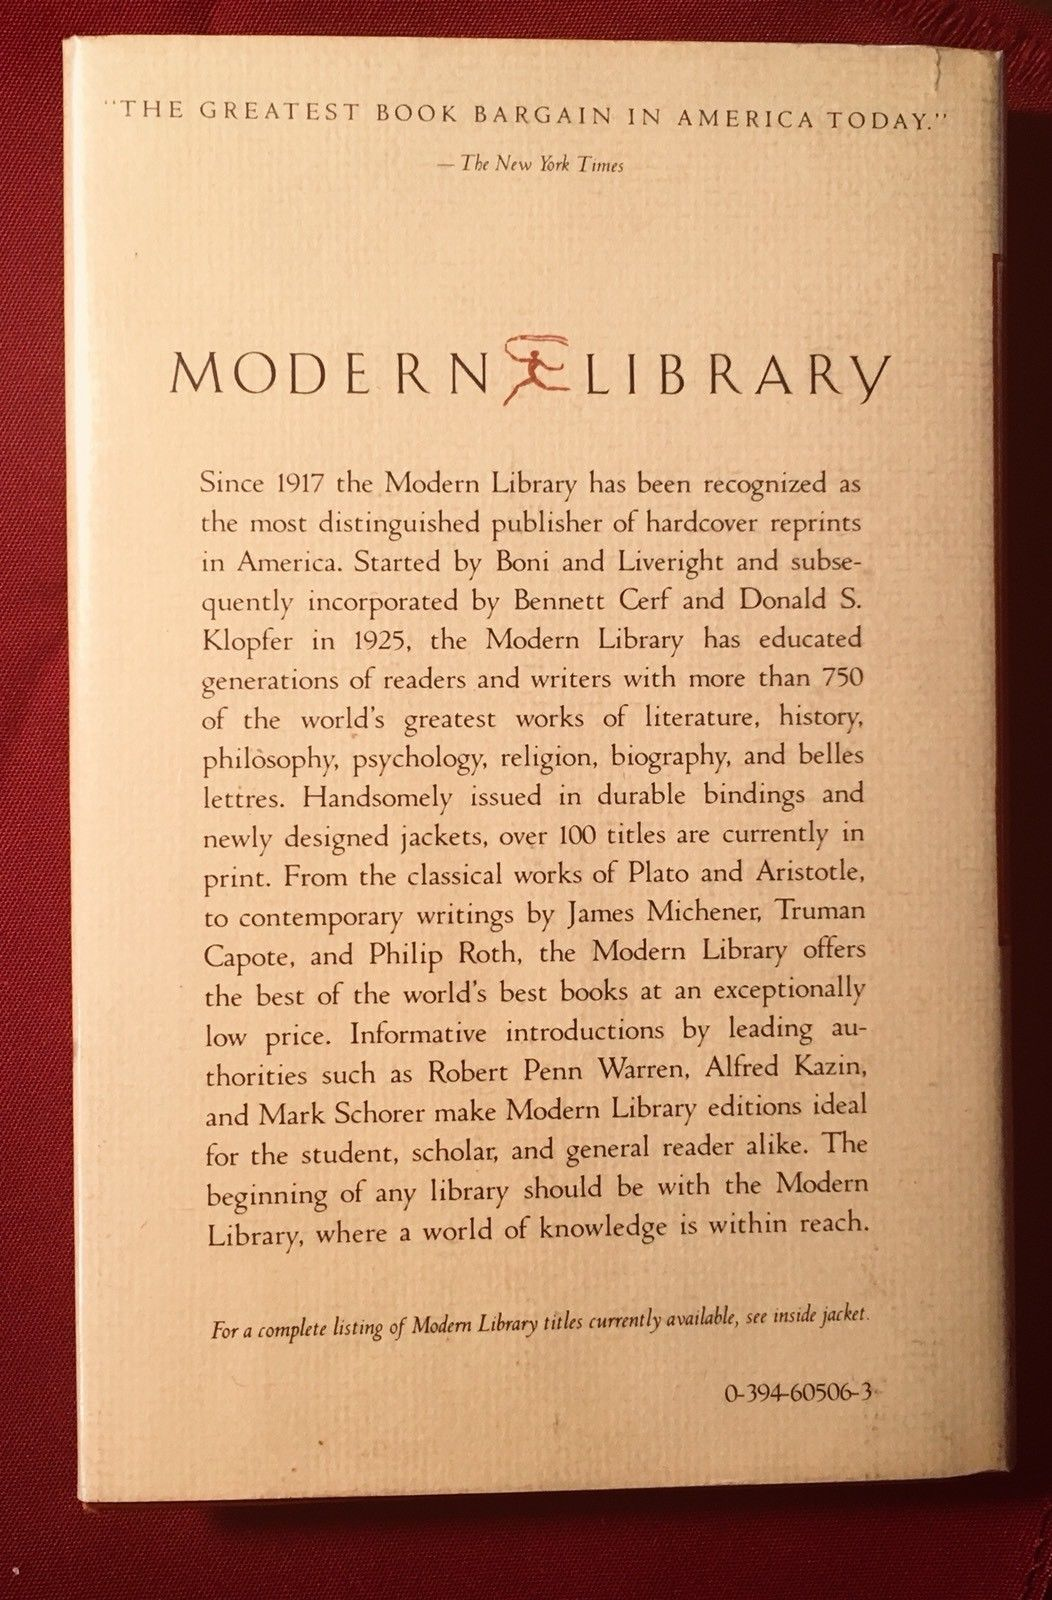 Mary Shelley FRANKENSTEIN Modern Library 1st Edition.